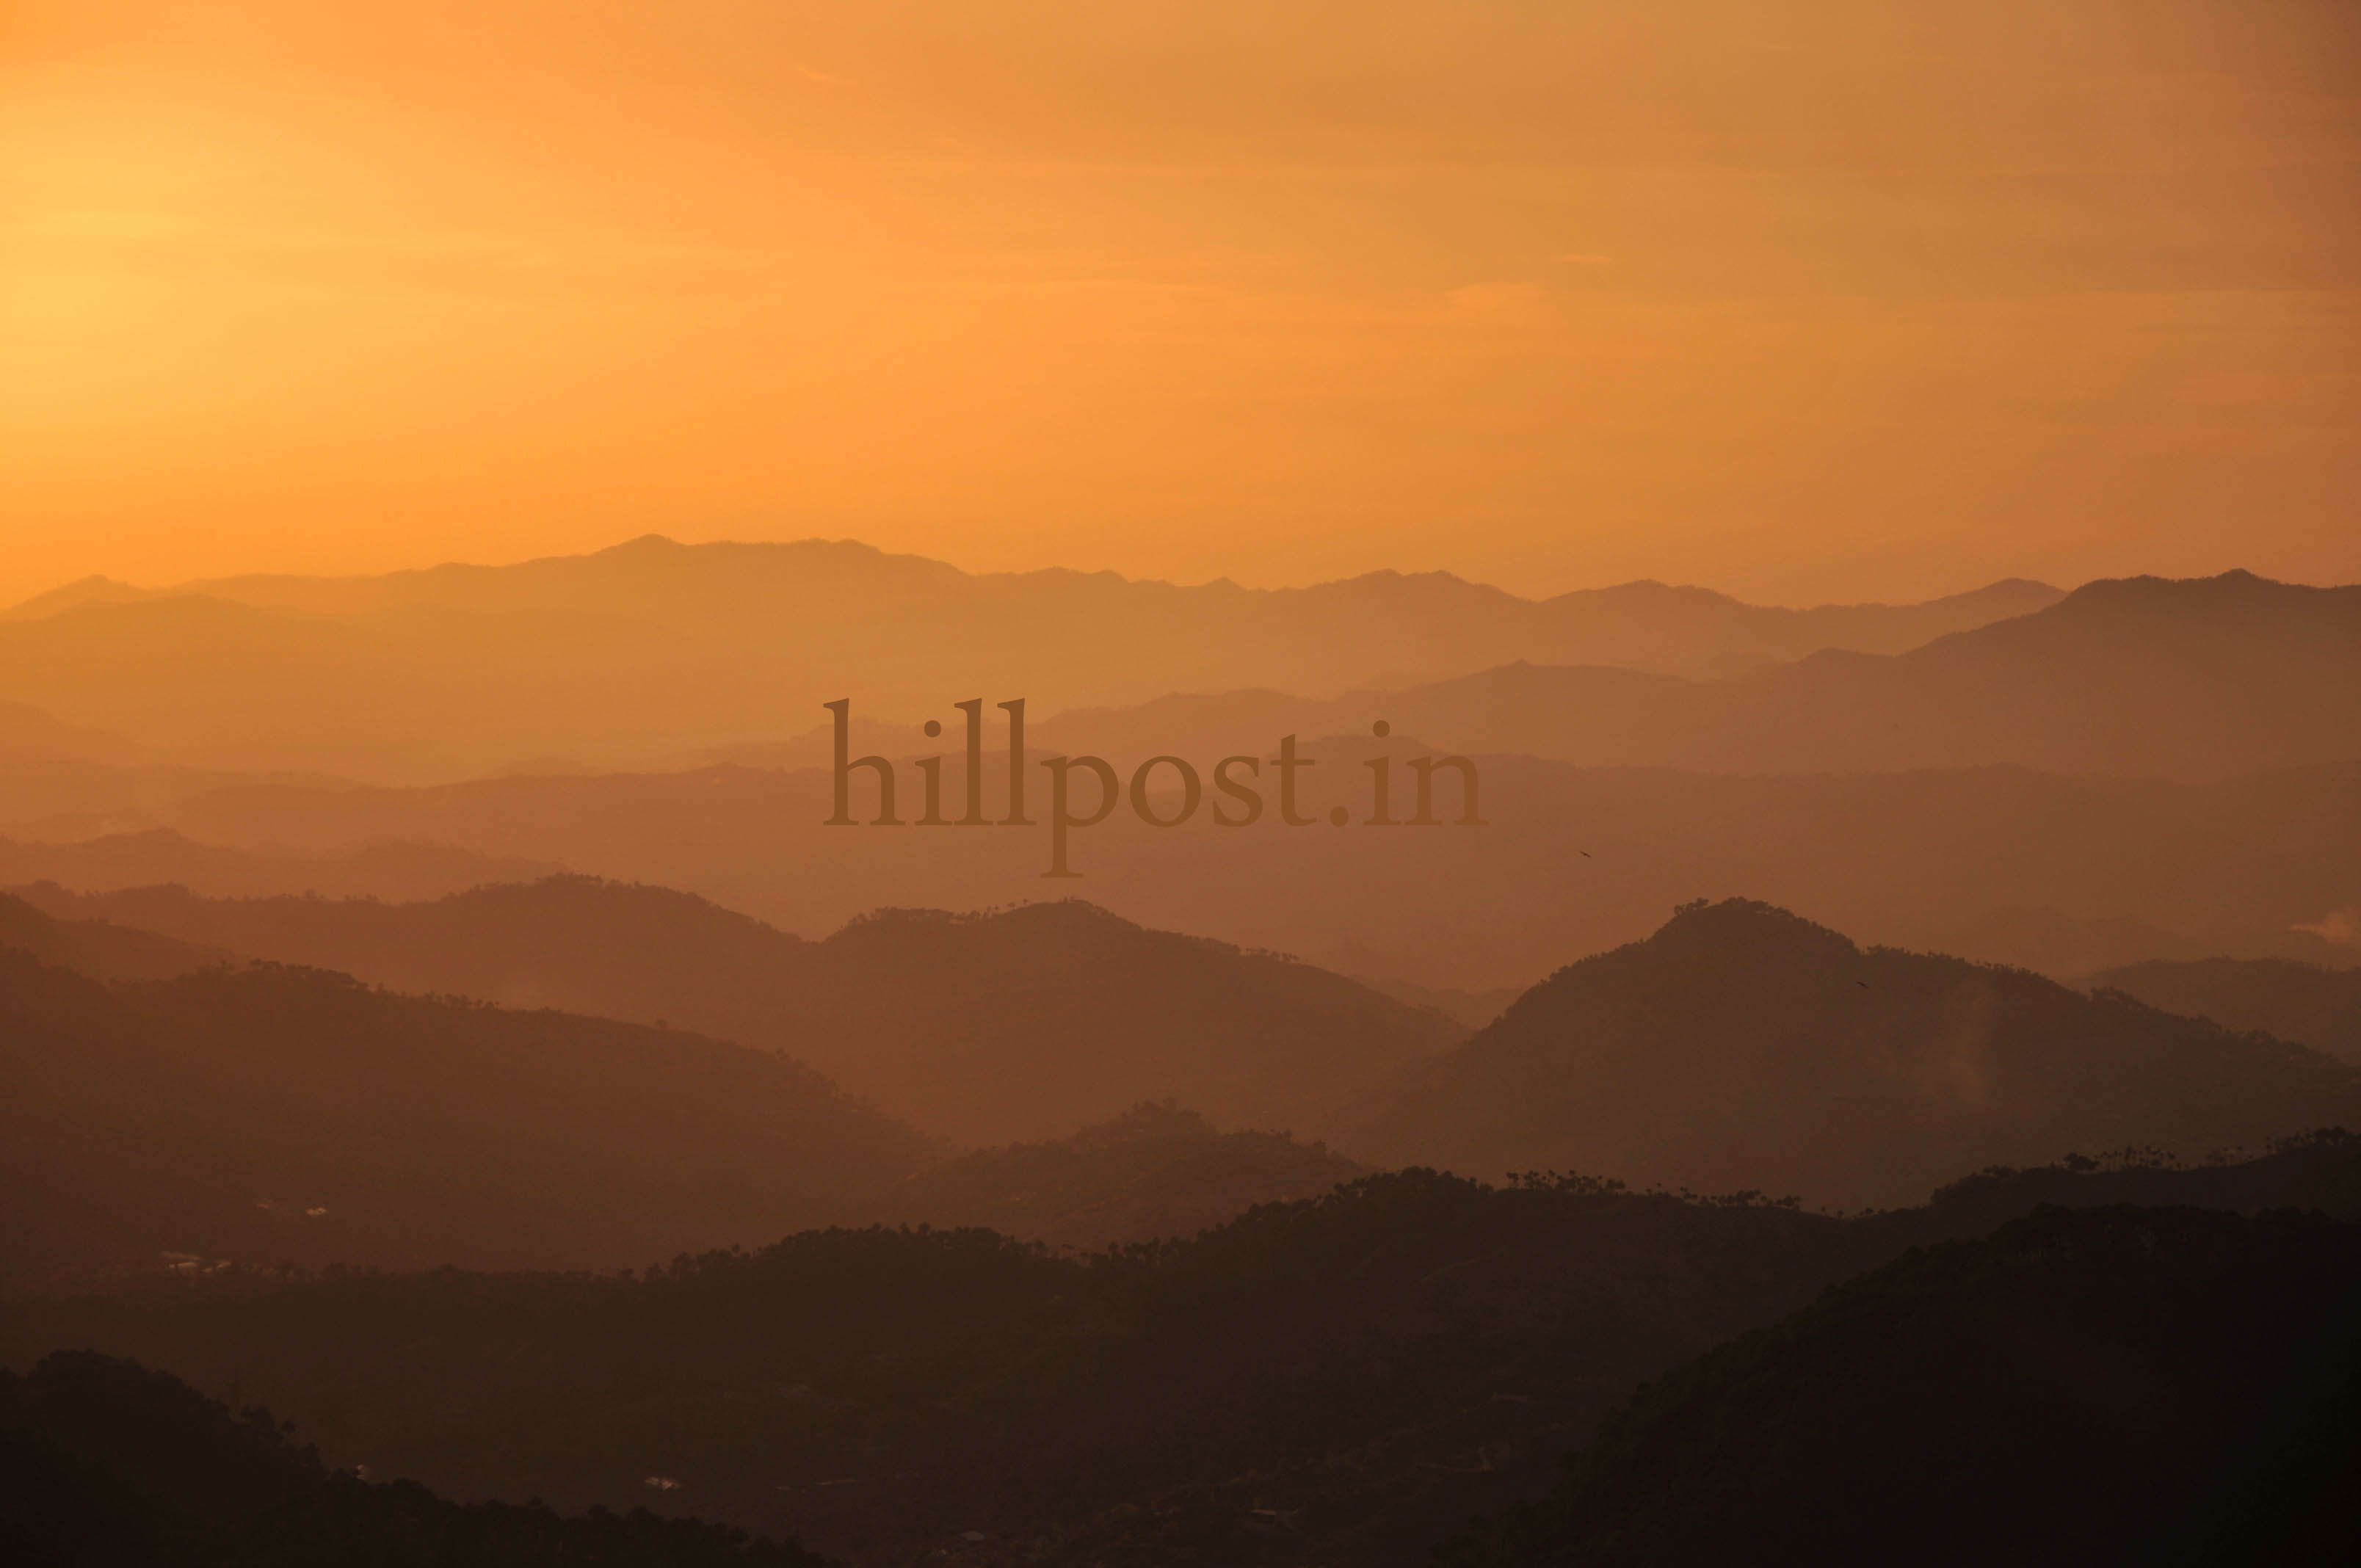 Different mountain ranges visible during sunset in the northern hill town of Shimla